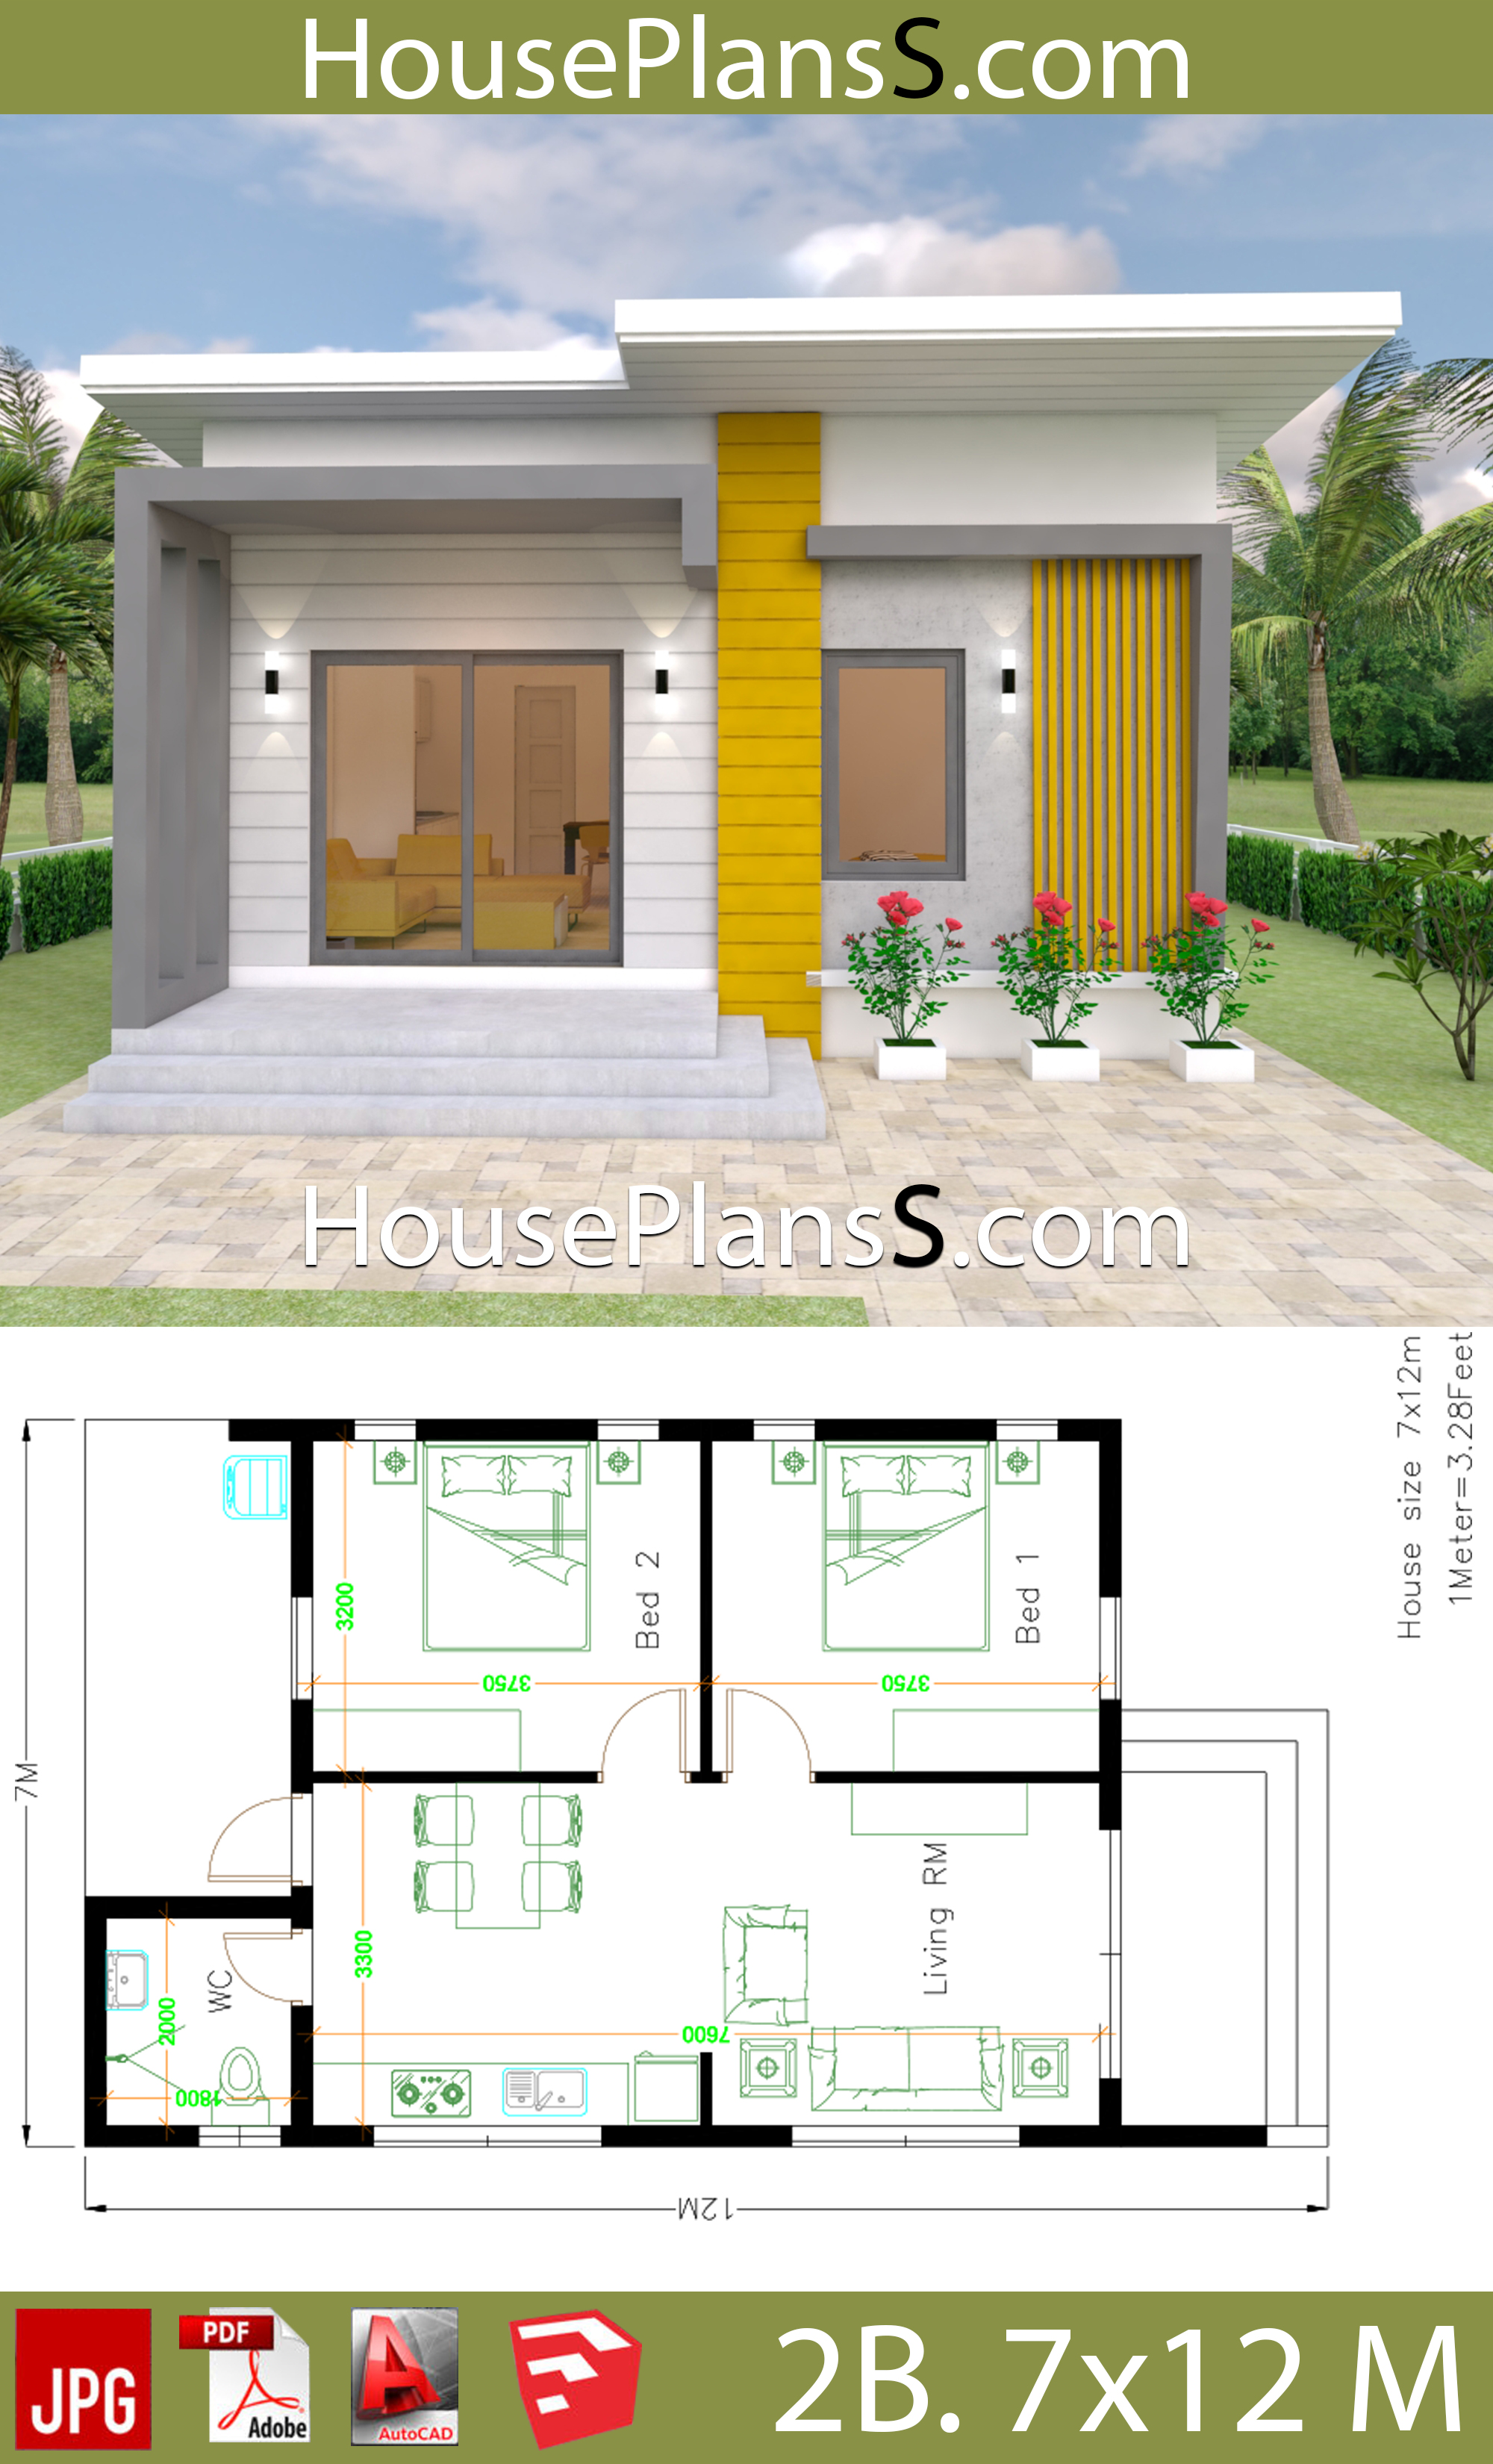 House Design Plans 7x12 With 2 Bedrooms Full Plans House Plans Free Downloads,Pendant Lighting For Dining Room Table